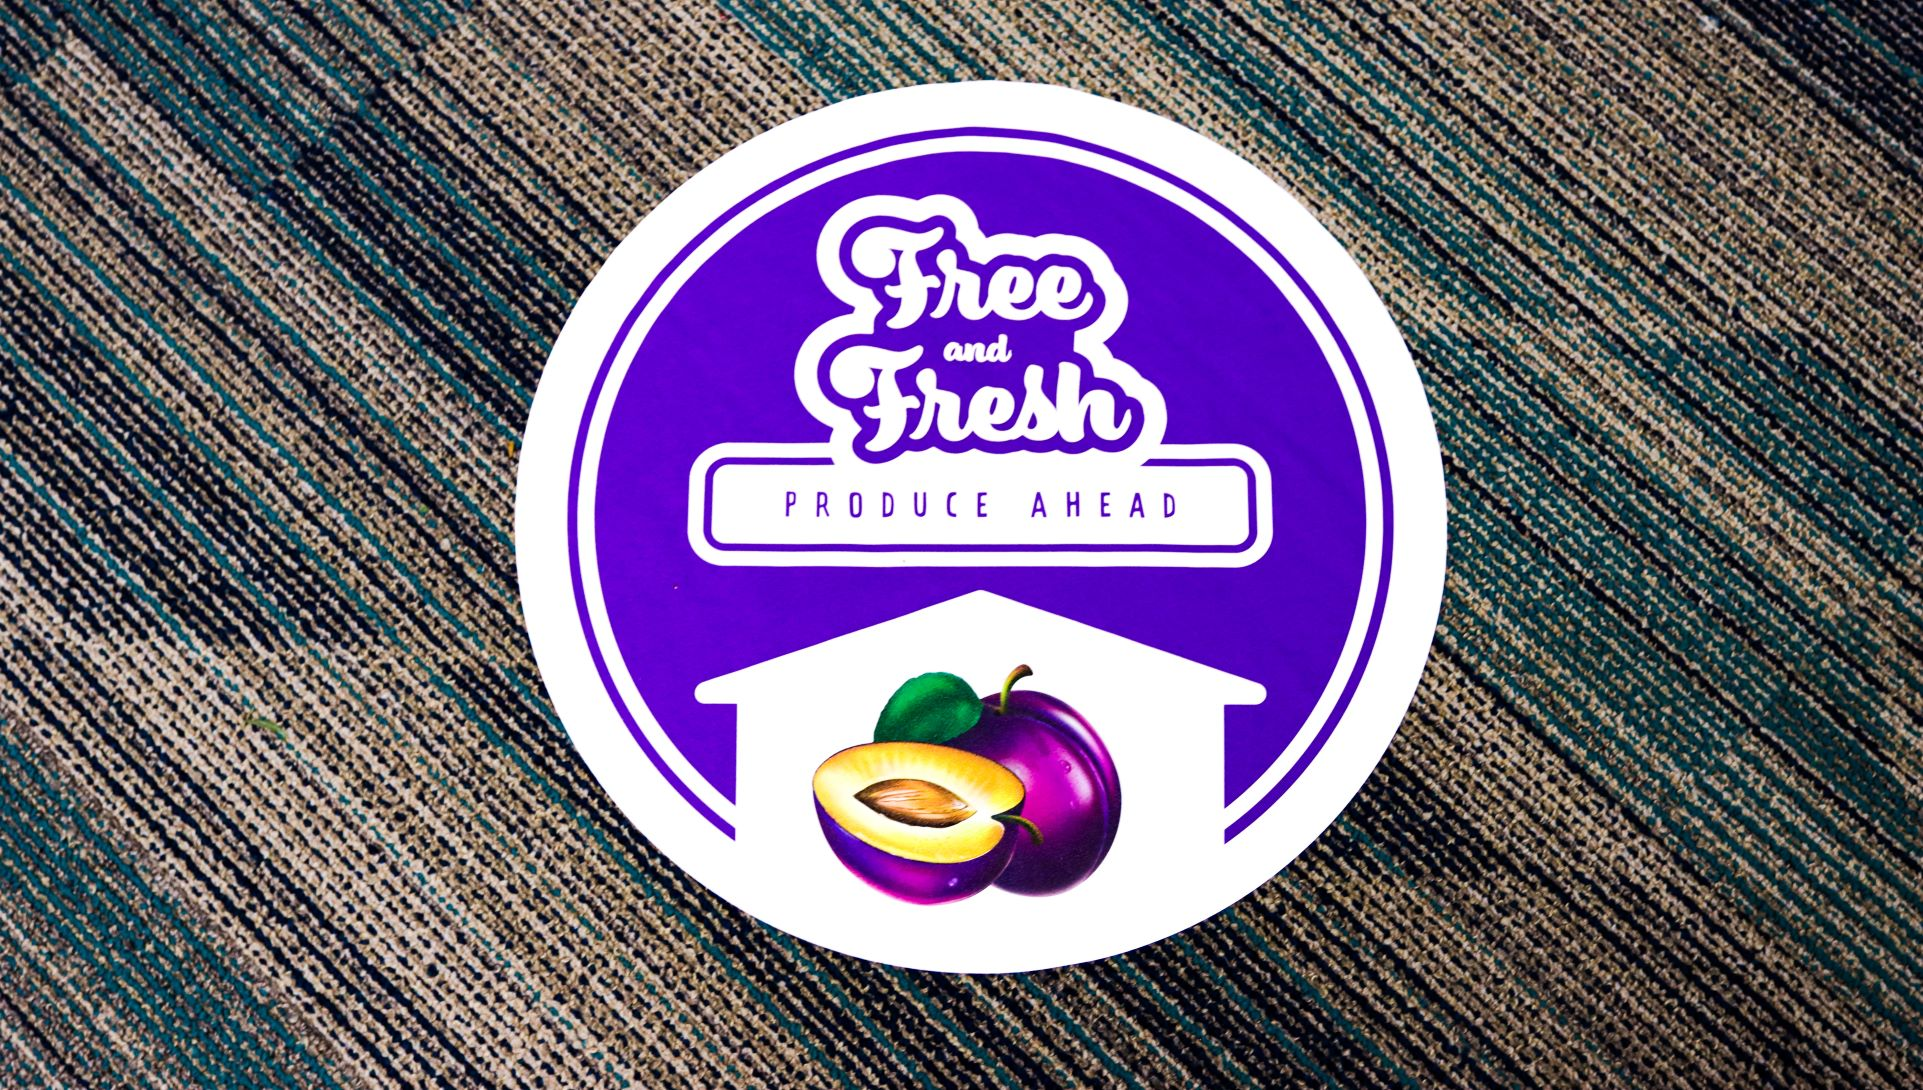 CCPL's Free and Fresh program expands to Dart, Otranto Road libraries